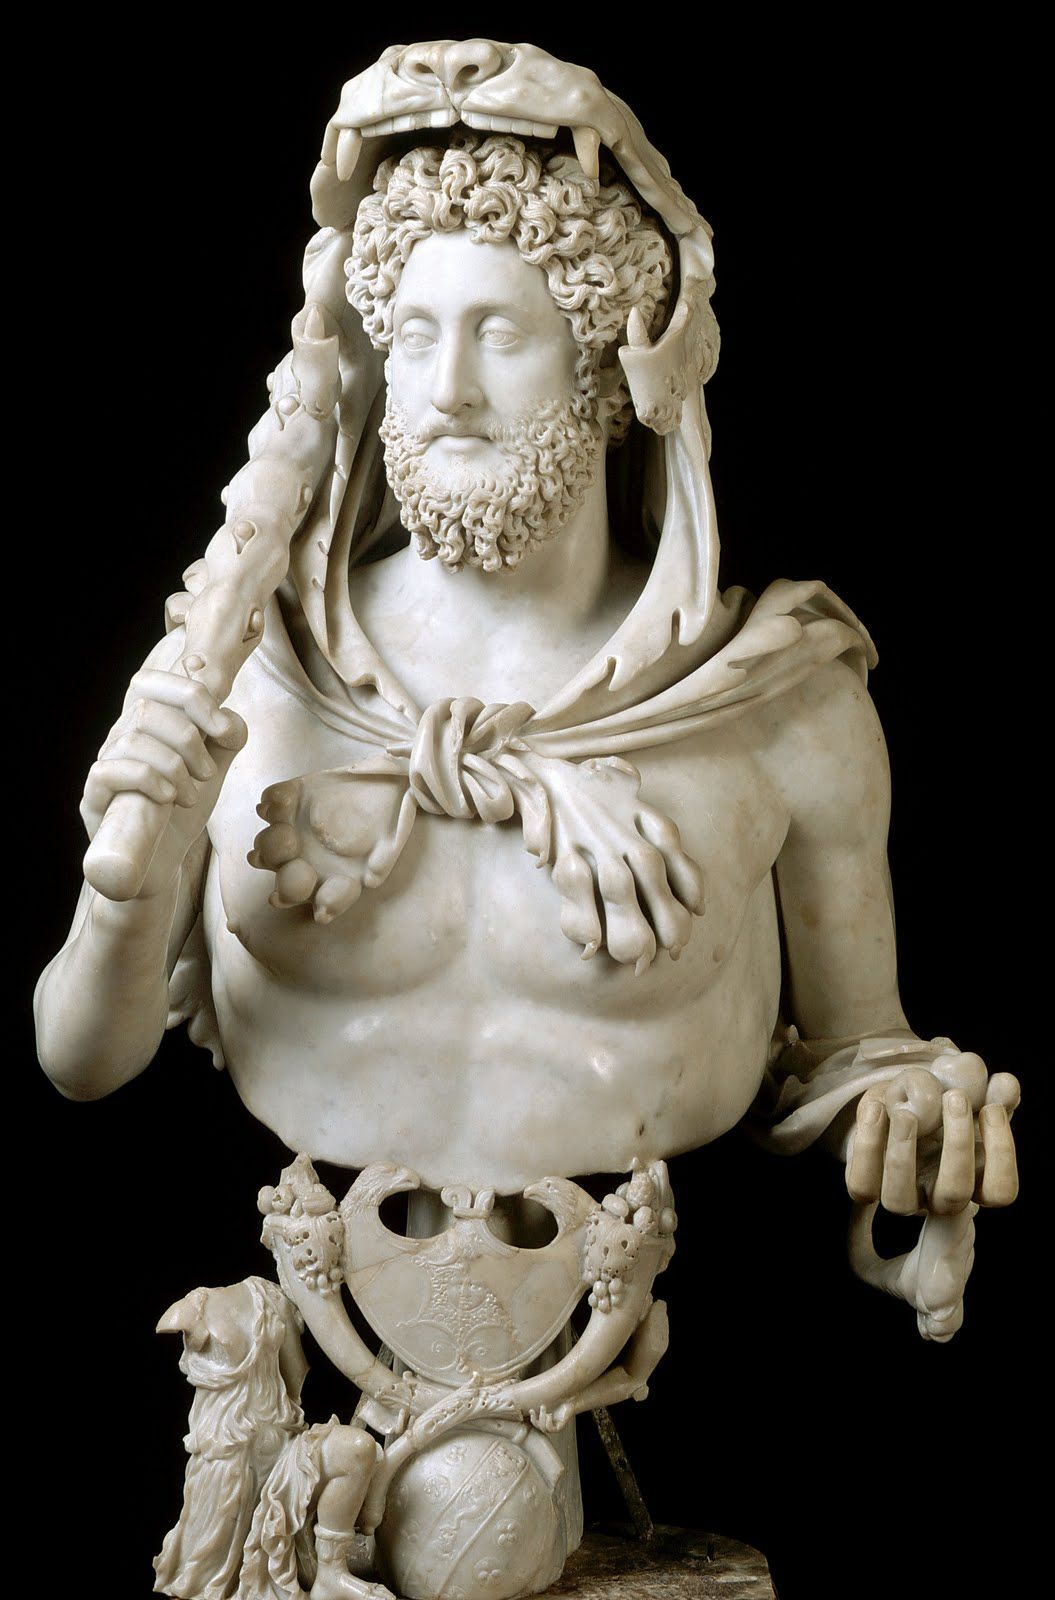 commodus as hercules was created furin bce during the commodus as hercules was created furin 191 192 bce during the r art